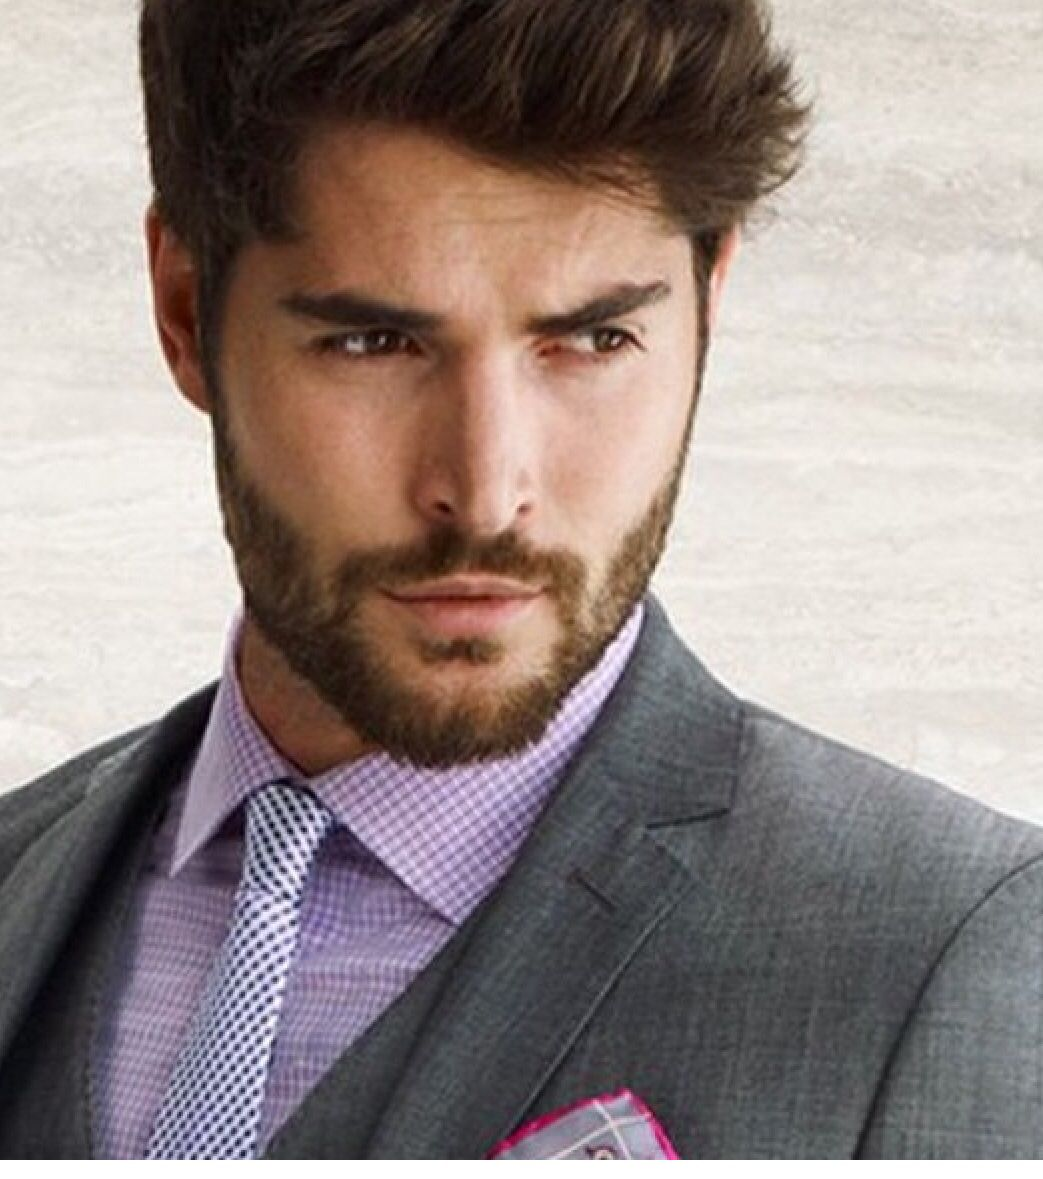 Nick Bateman Canadian Model And Actor Nick Bateman